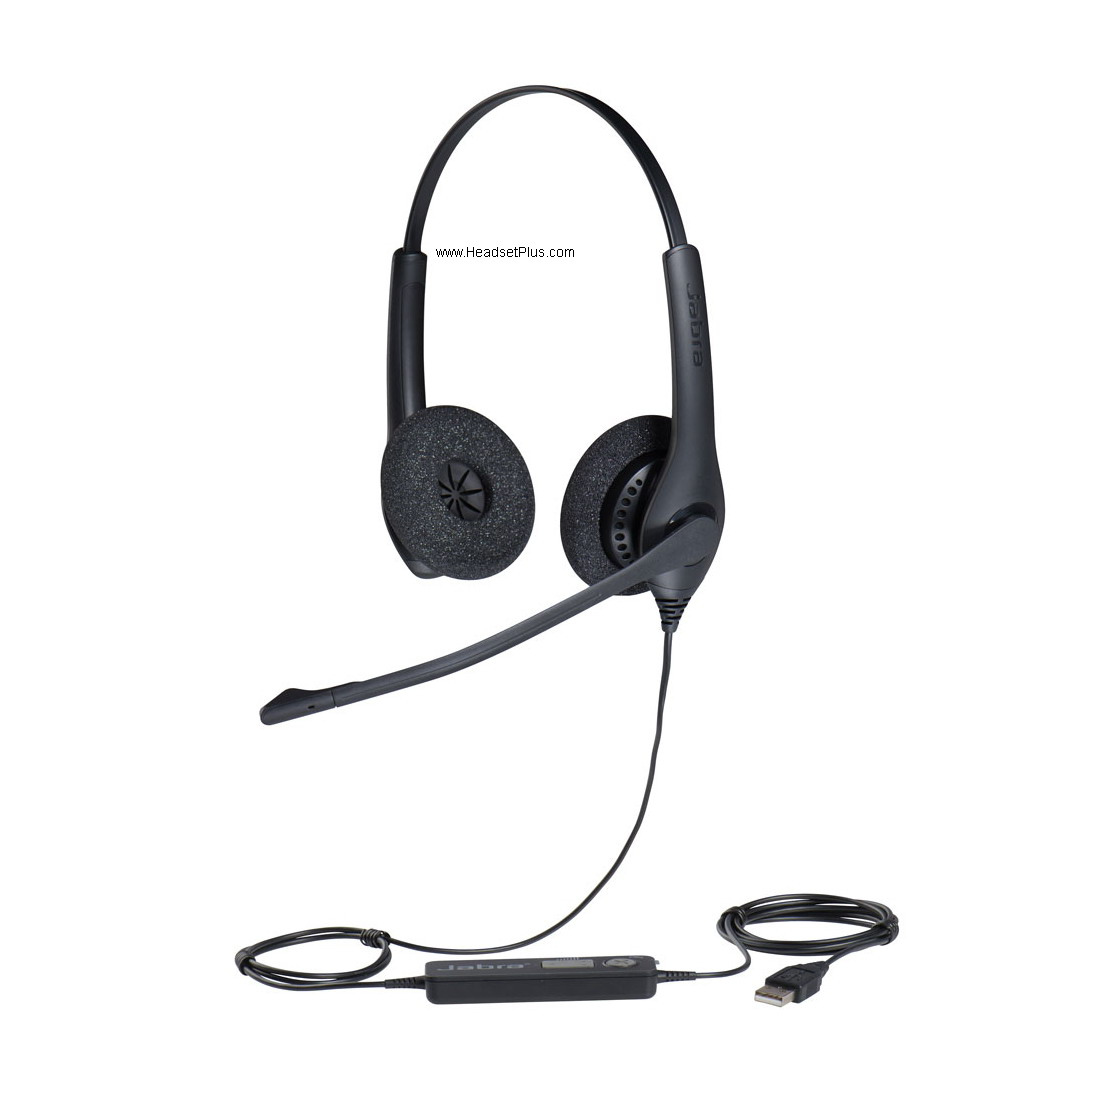 Direct Connect Headsets Archives - HeadsetPlus com